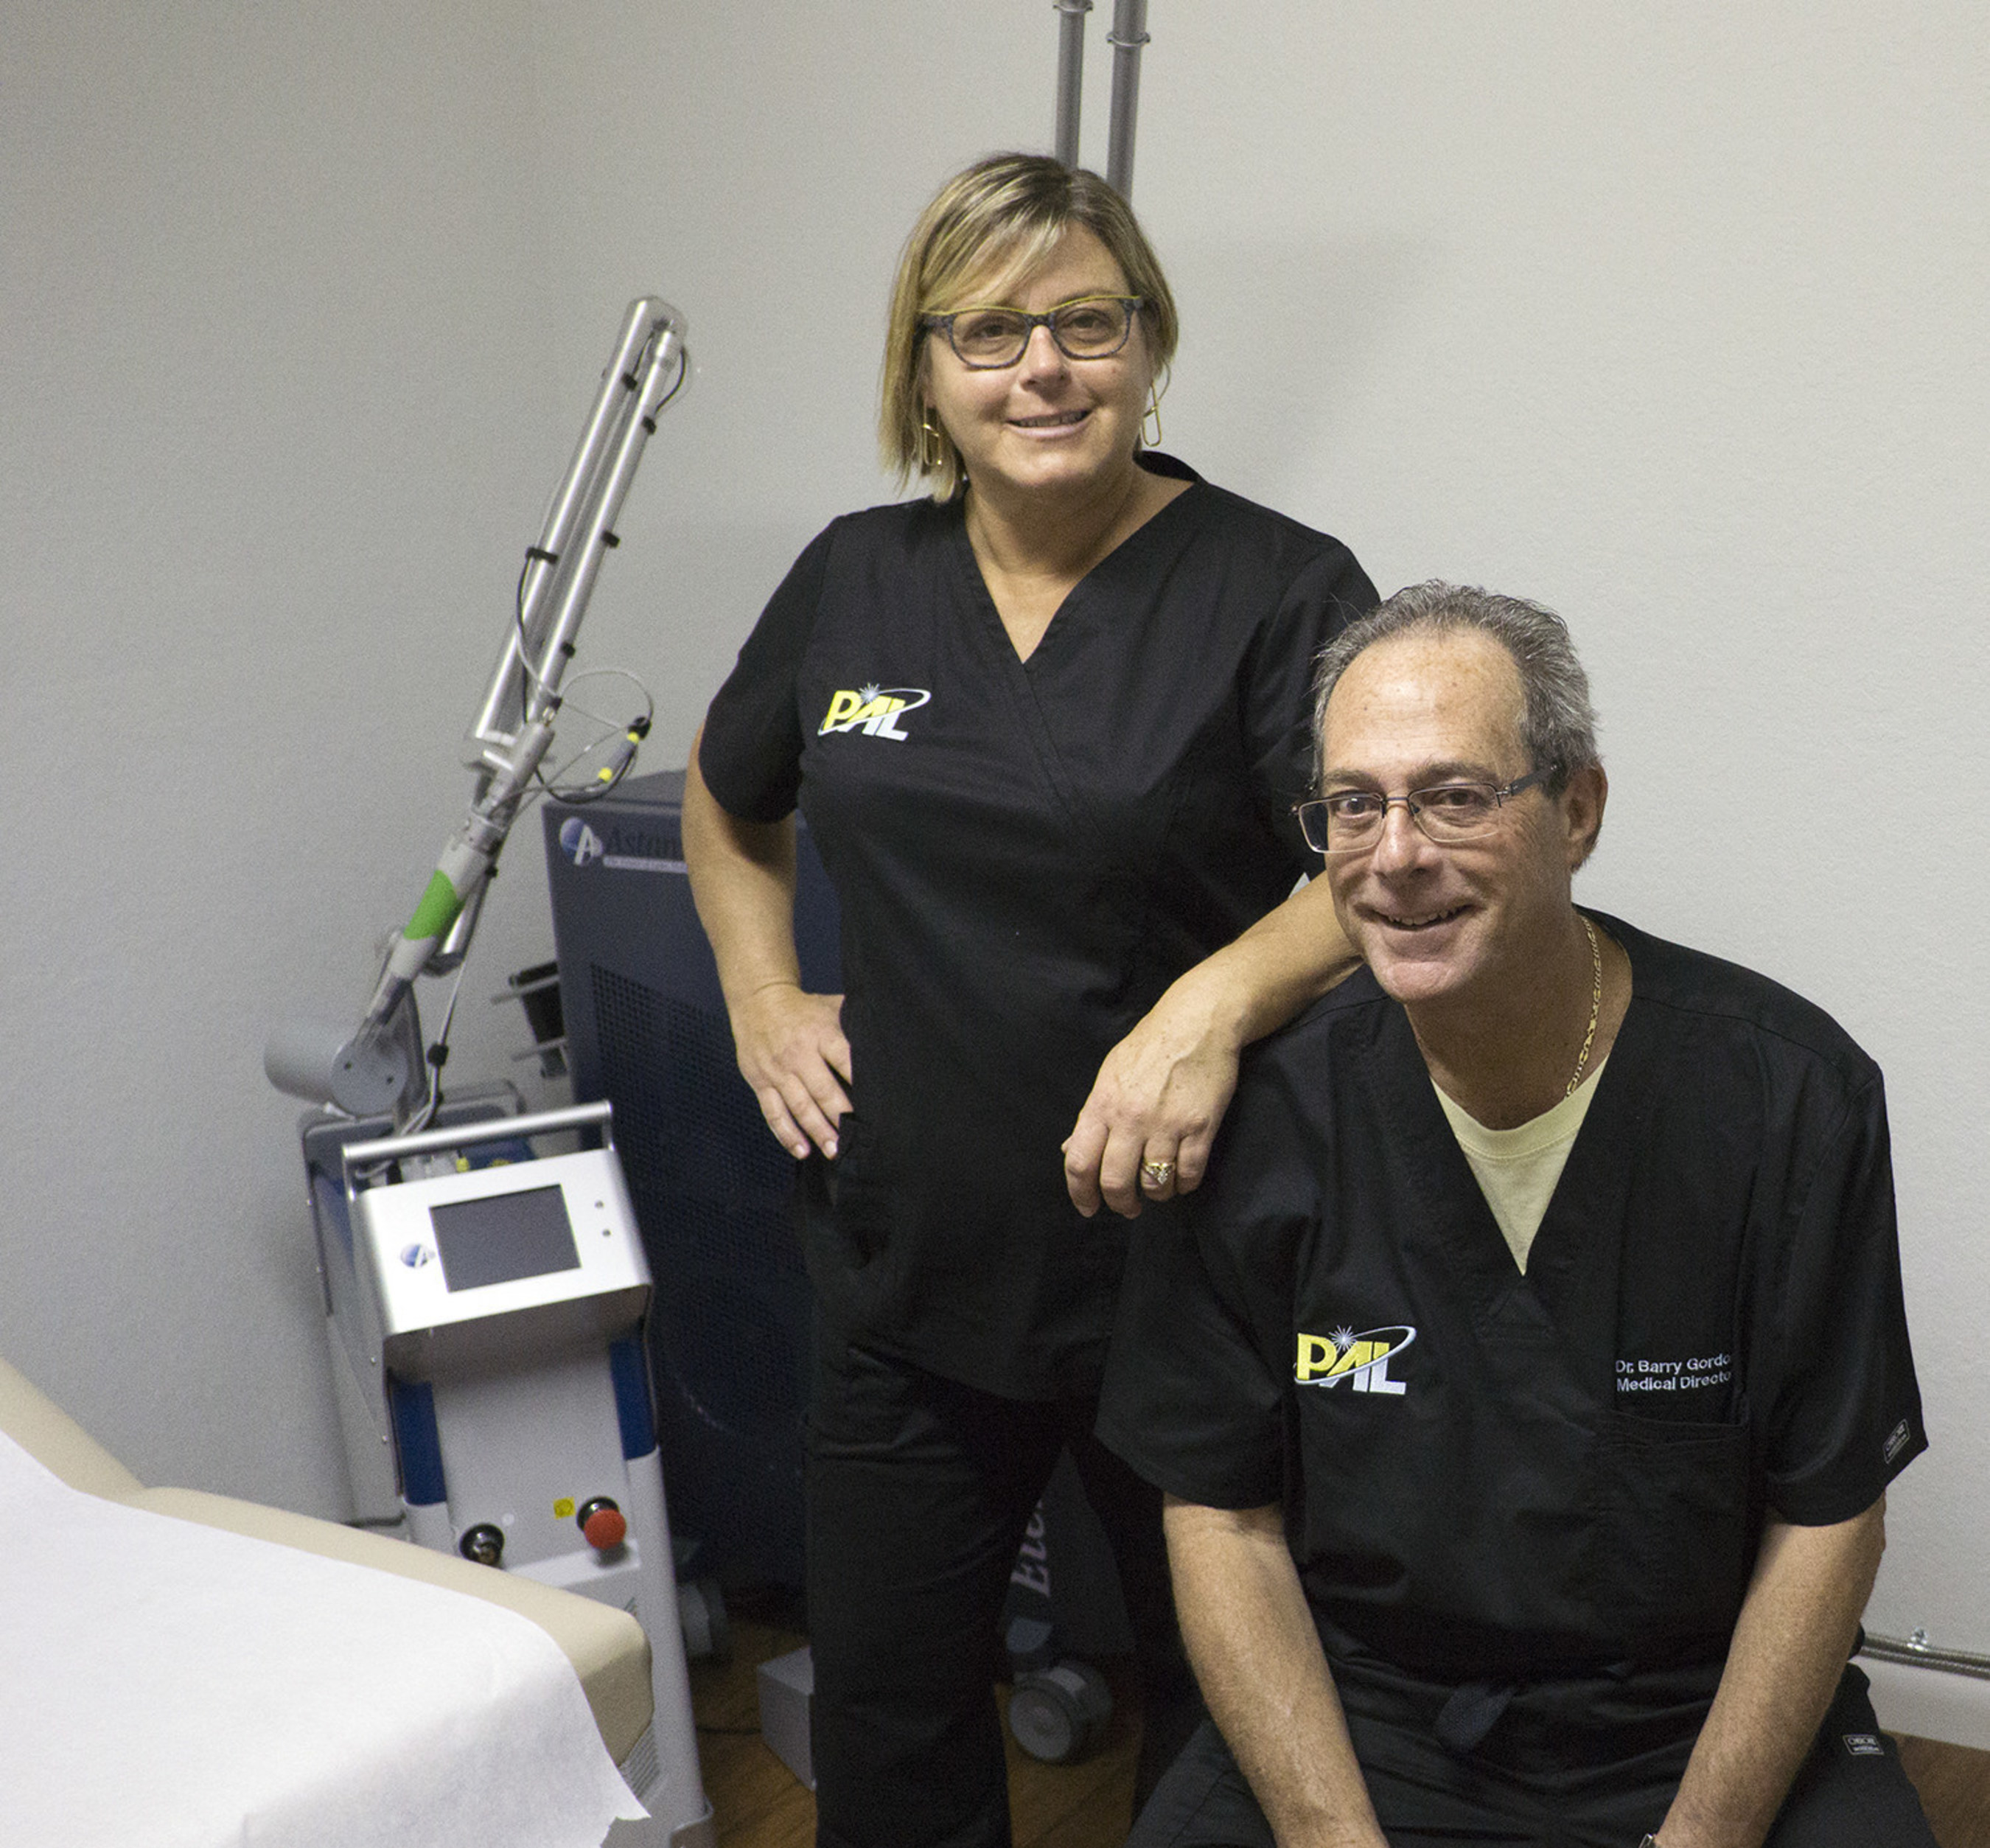 Physicians Advanced Laser Centers Announces Grand Opening In Venice, FL Featuring Trinity Tattoo